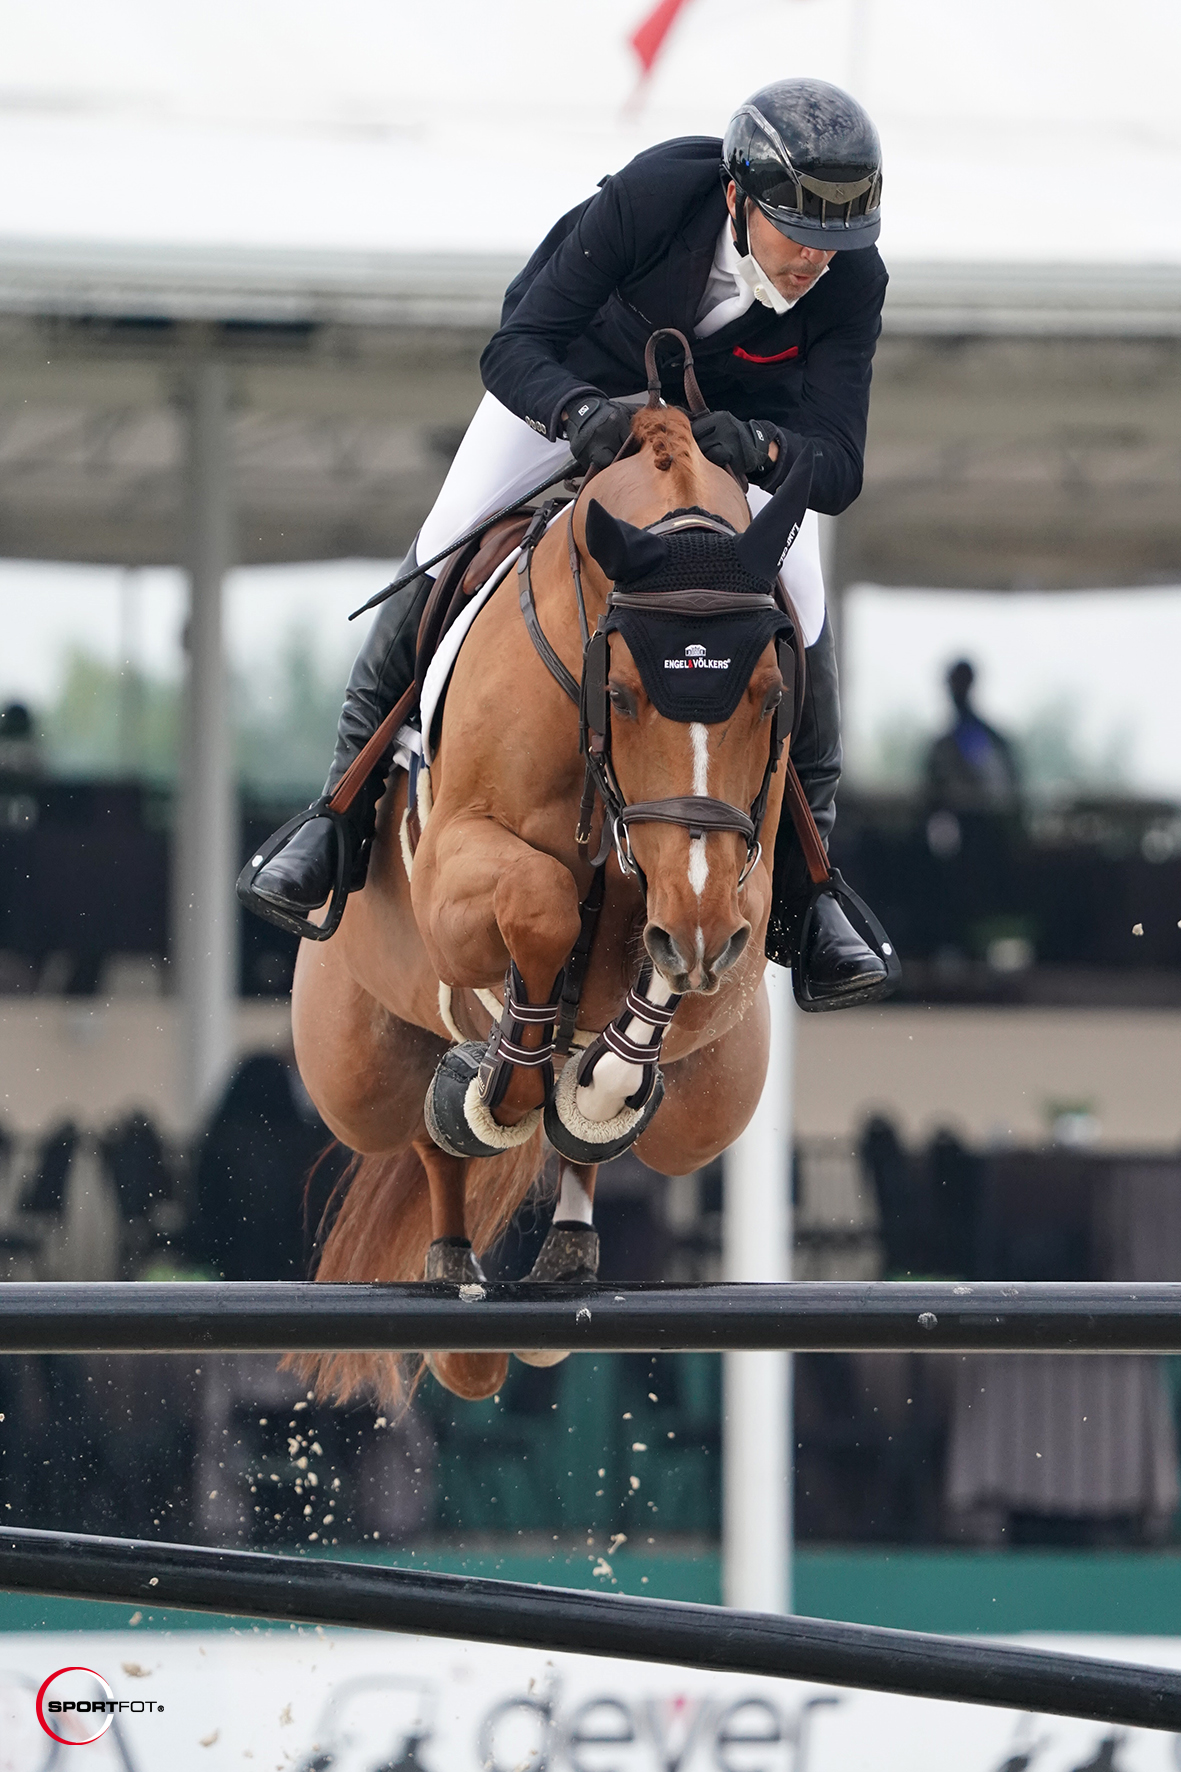 Eric Lamaze and Chacco Kid 588-1478 Sportfot